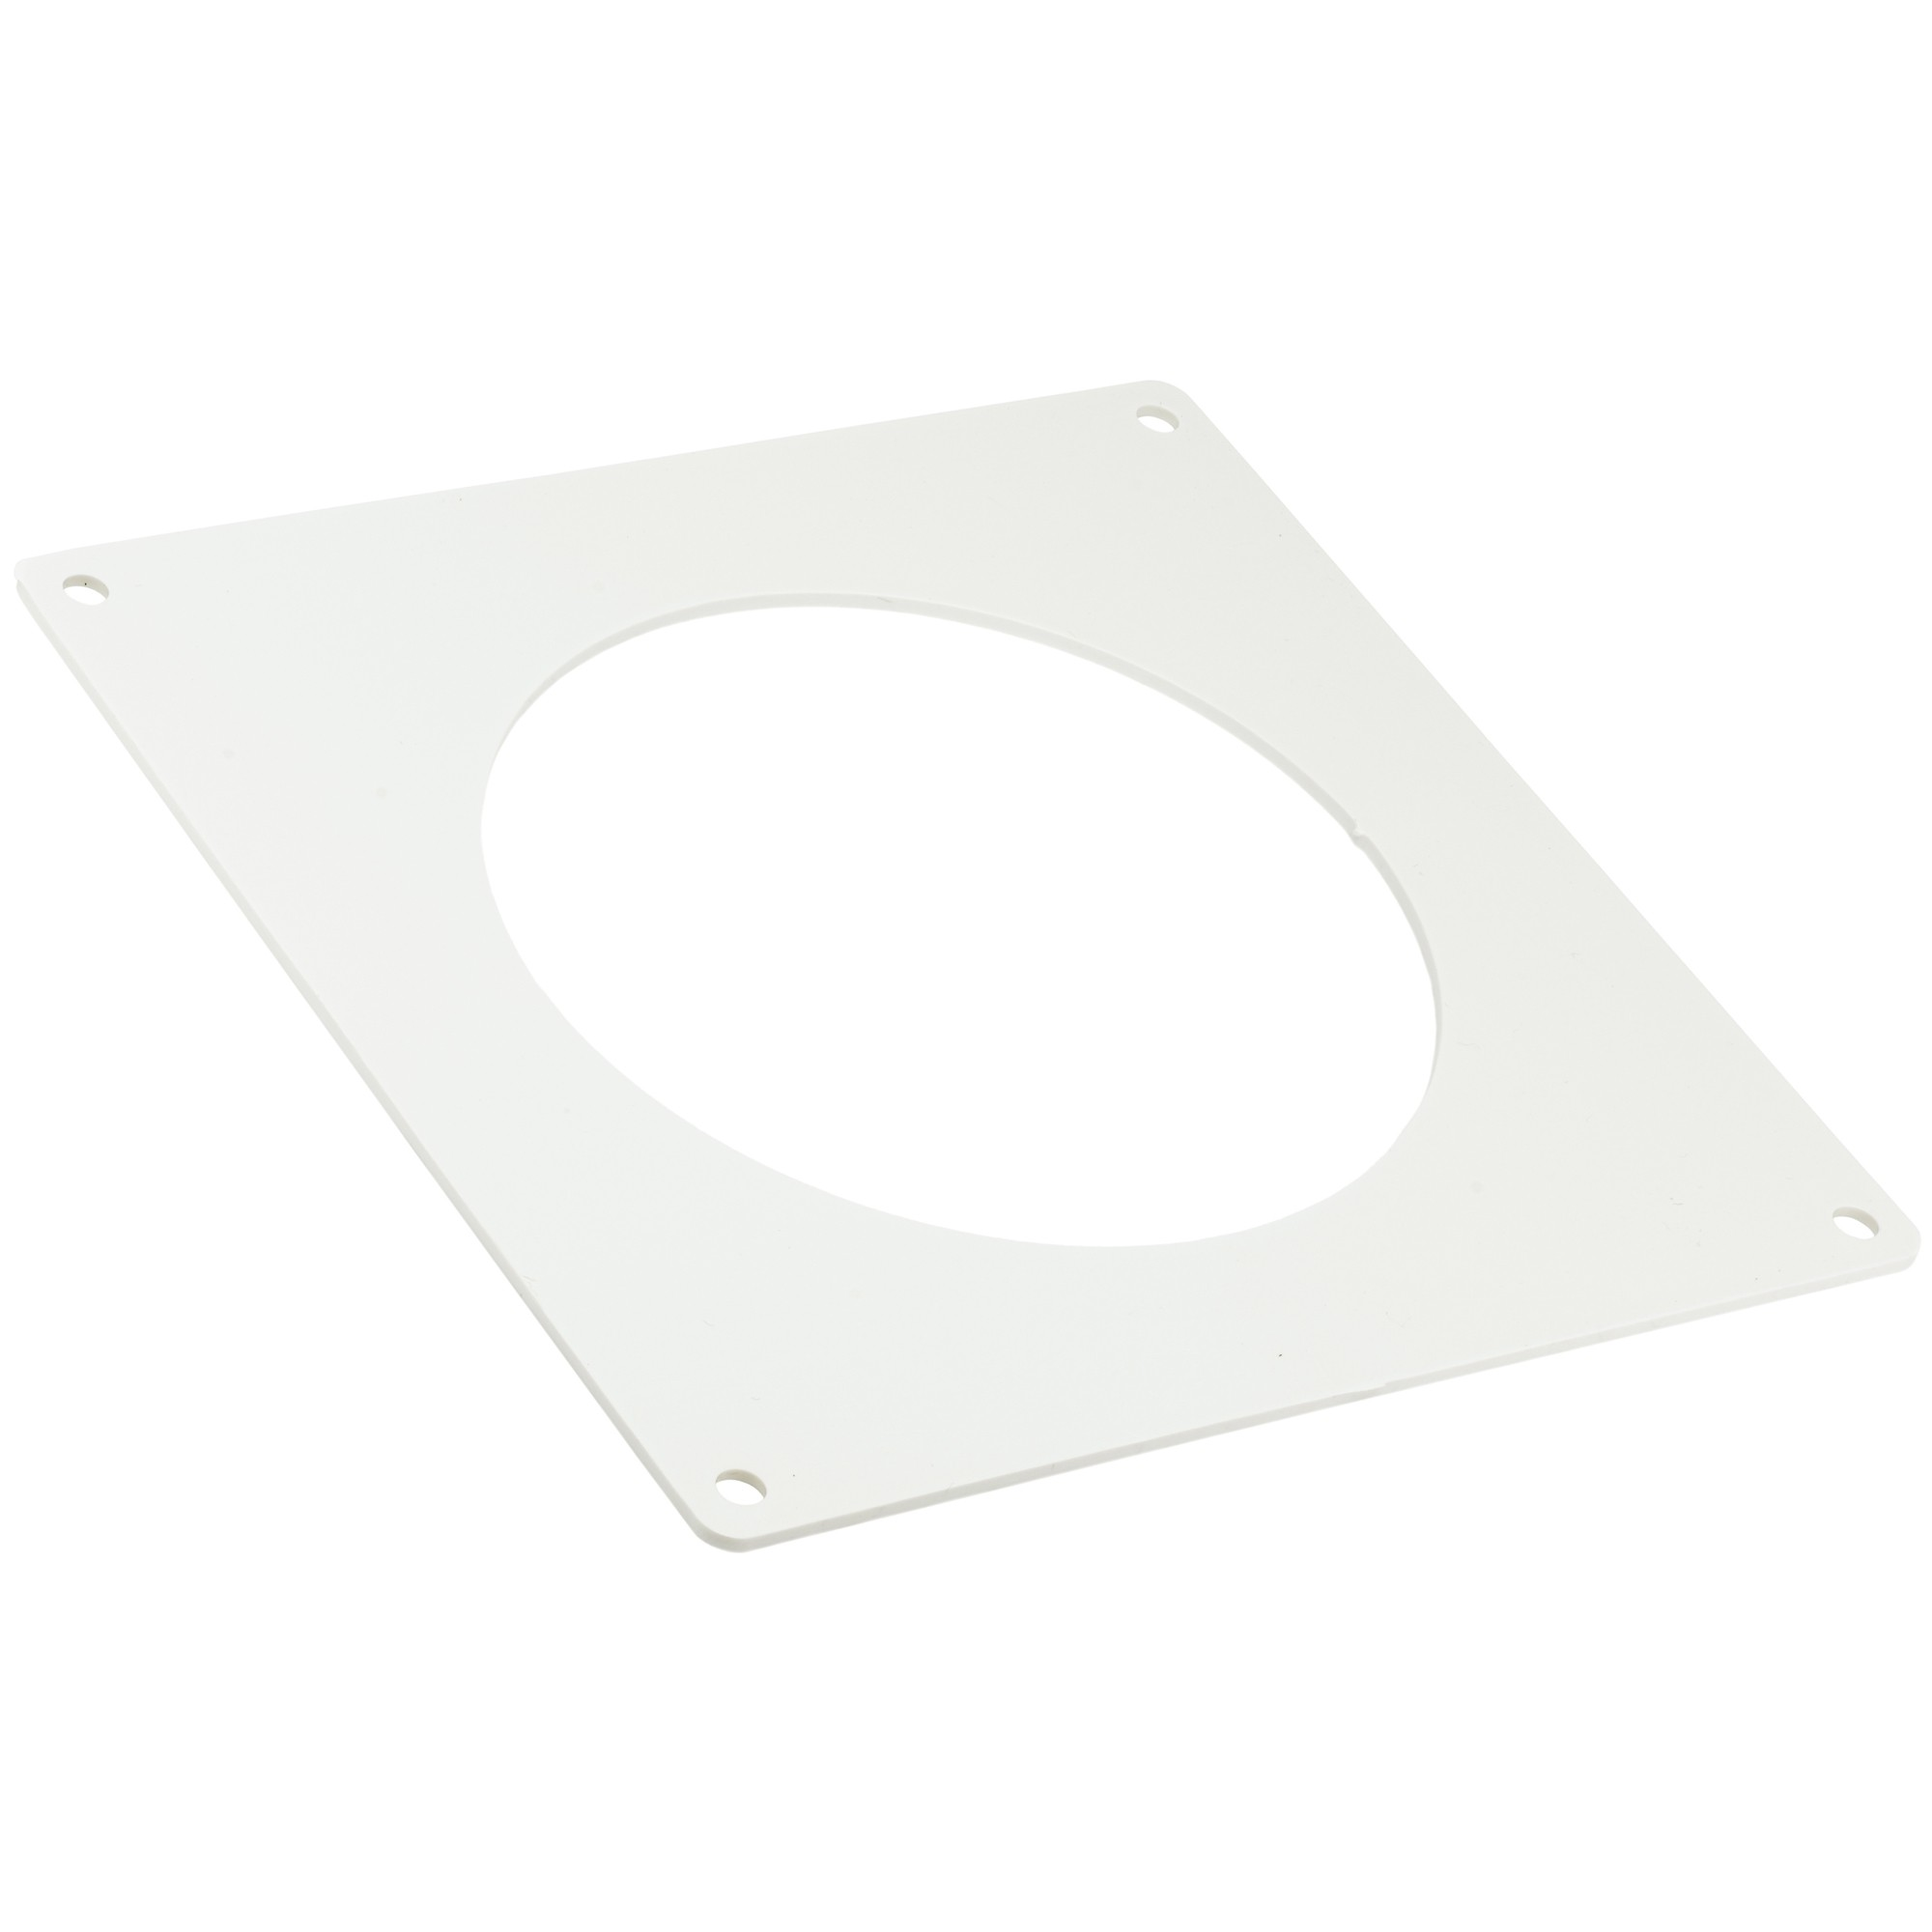 Manrose Round Ducting Pipe Wall Plate - White, 120mm